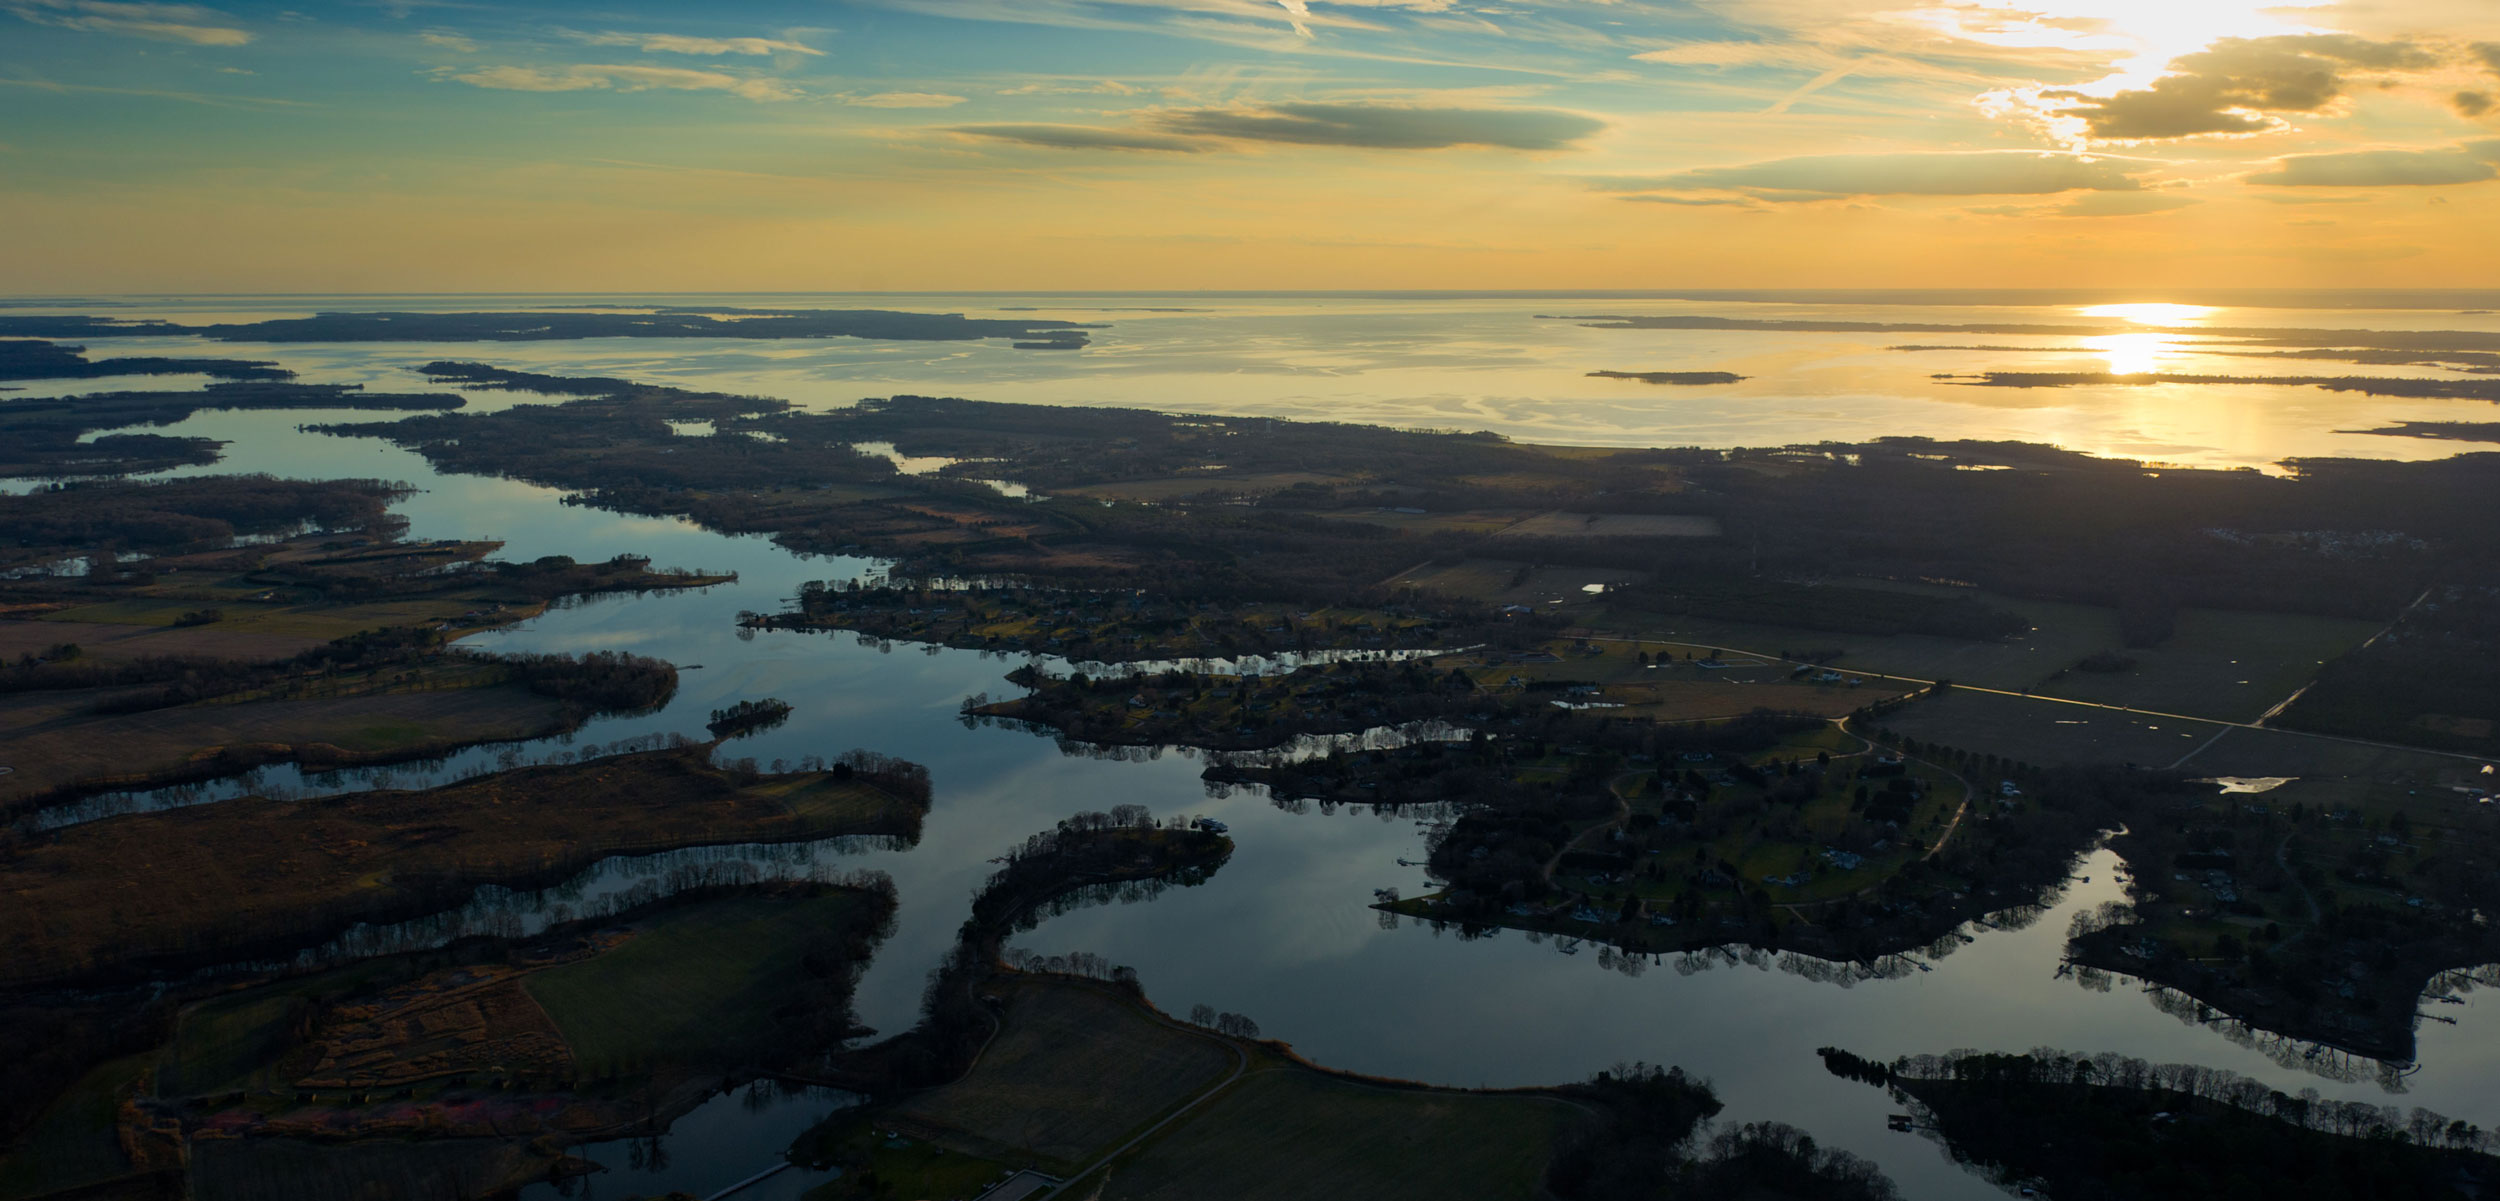 estuaries of the Chesapeake Bay from the sky